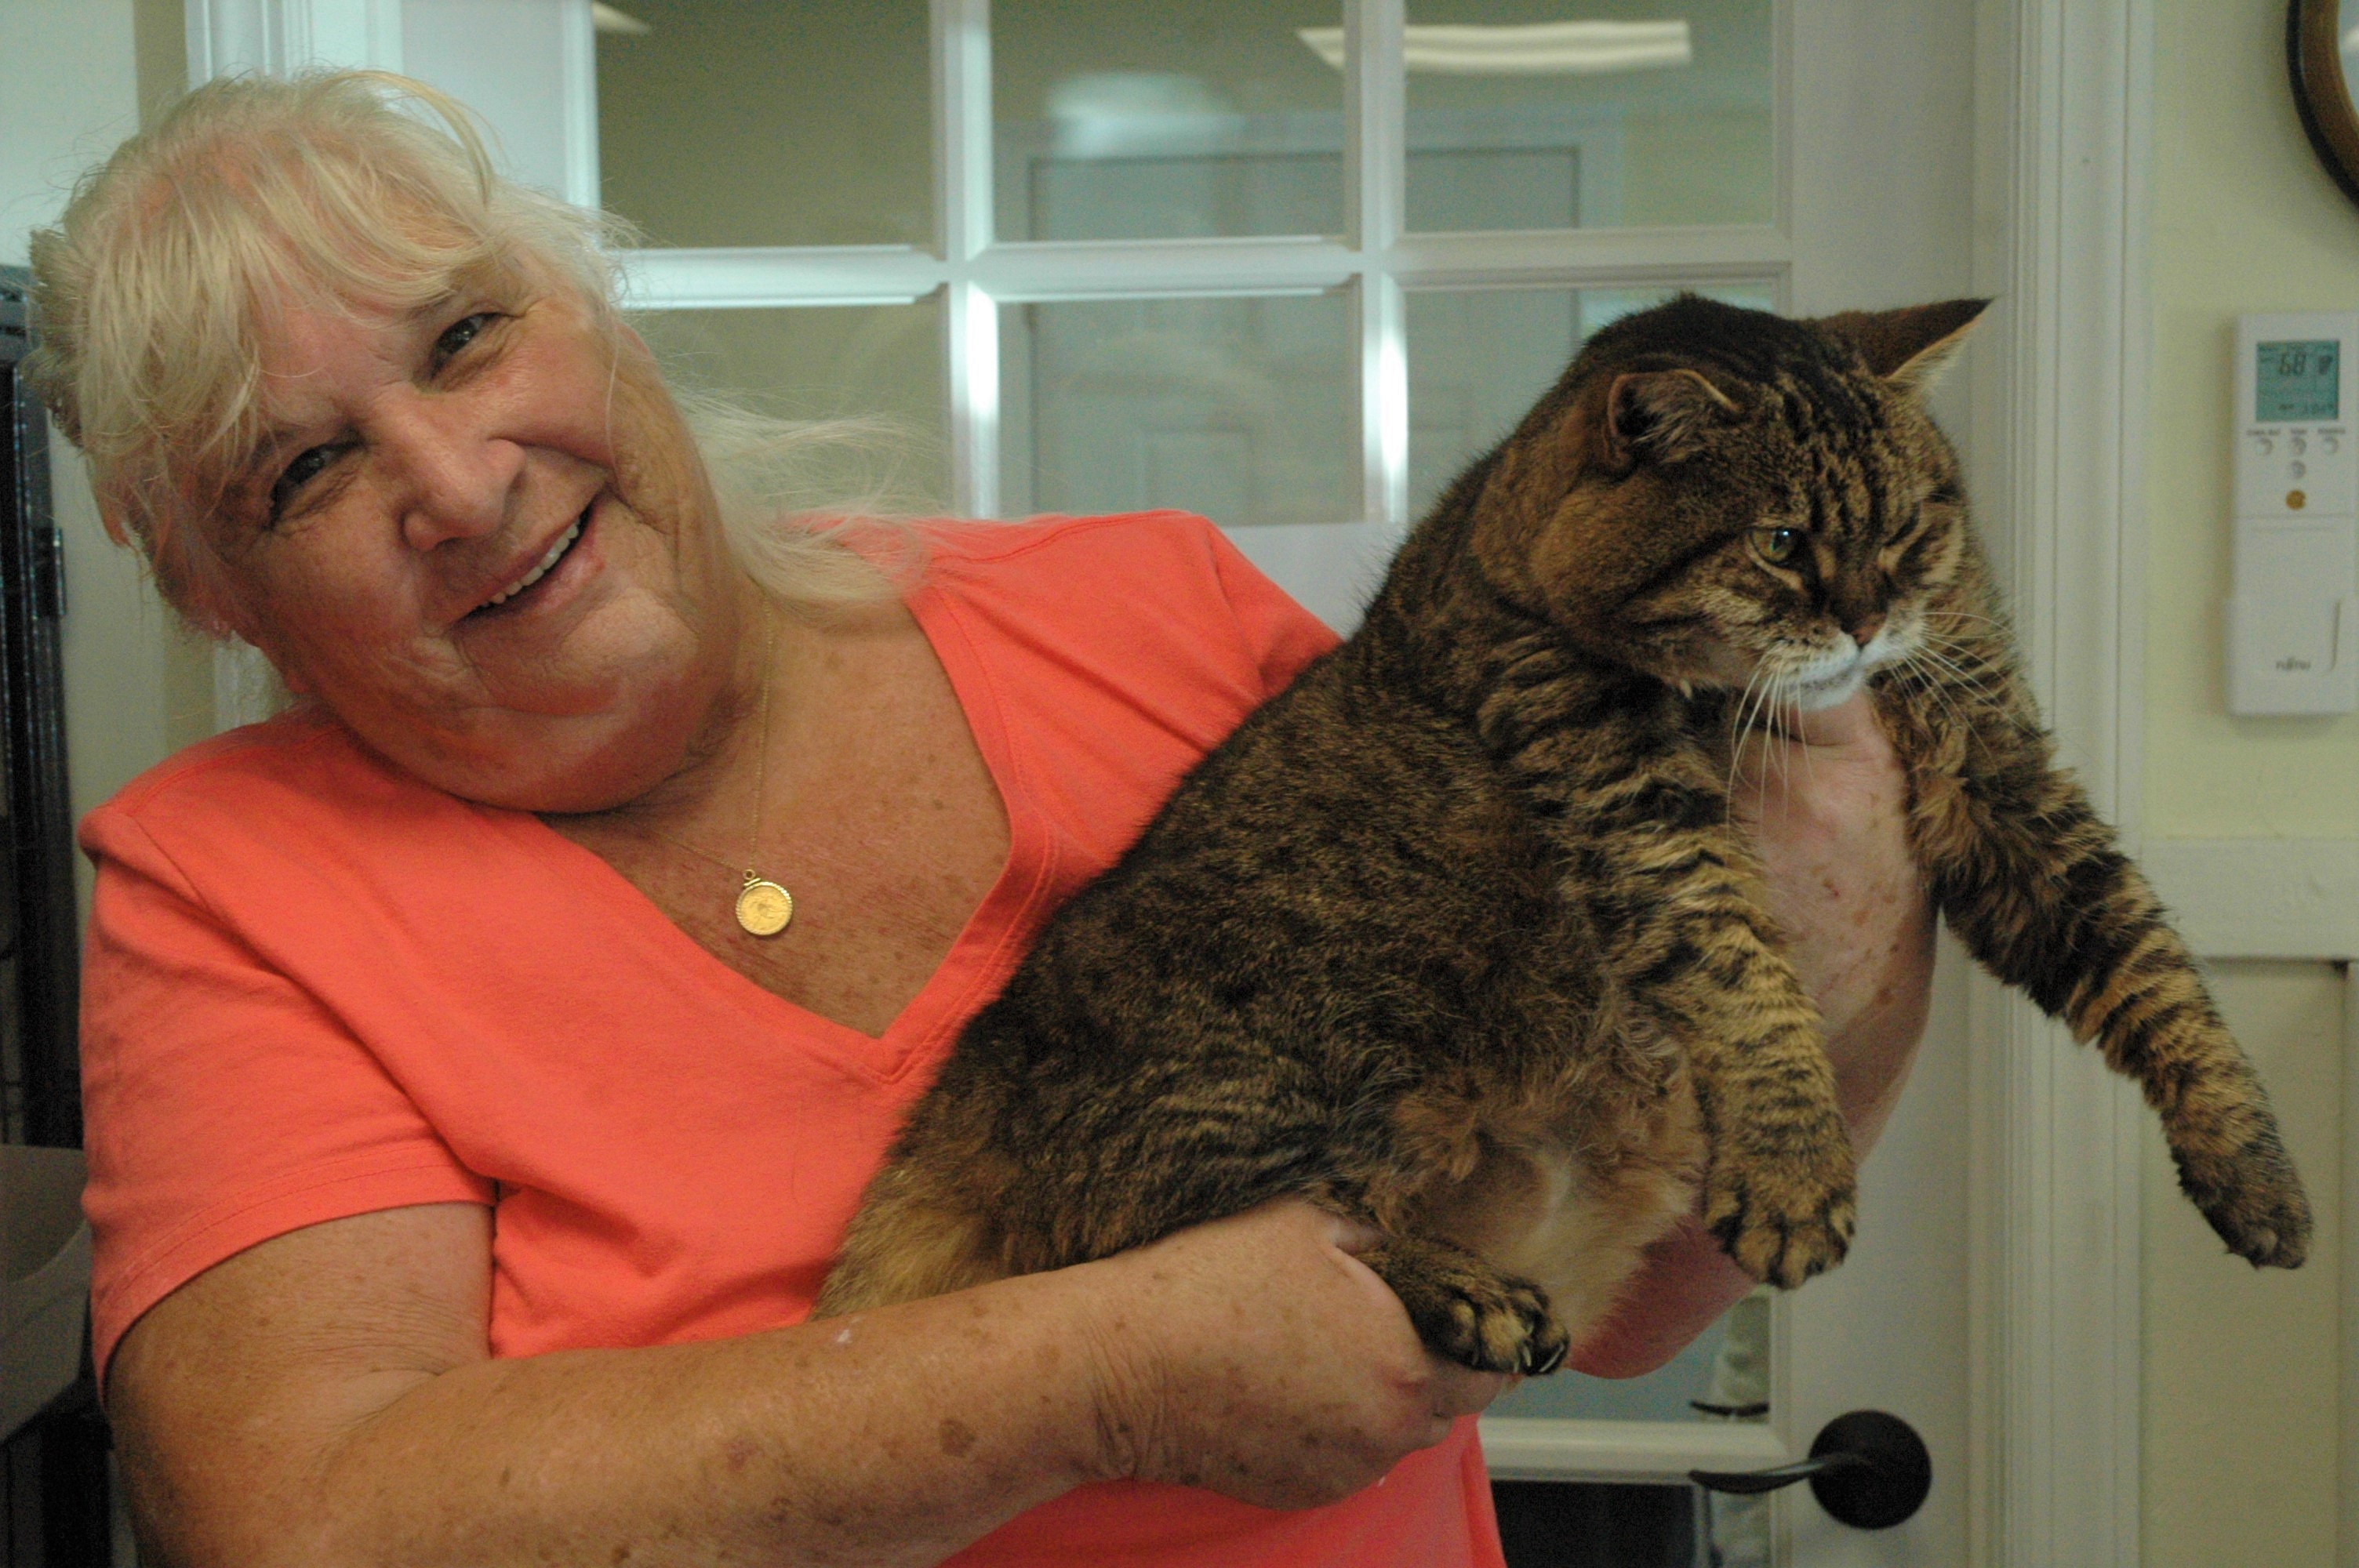 Another Chance Animal Rescue founder Marilyn Harley holds a cat named Ally at the Sanford facility on Saturday. LIZ GOTTHELF/Journal Tribune